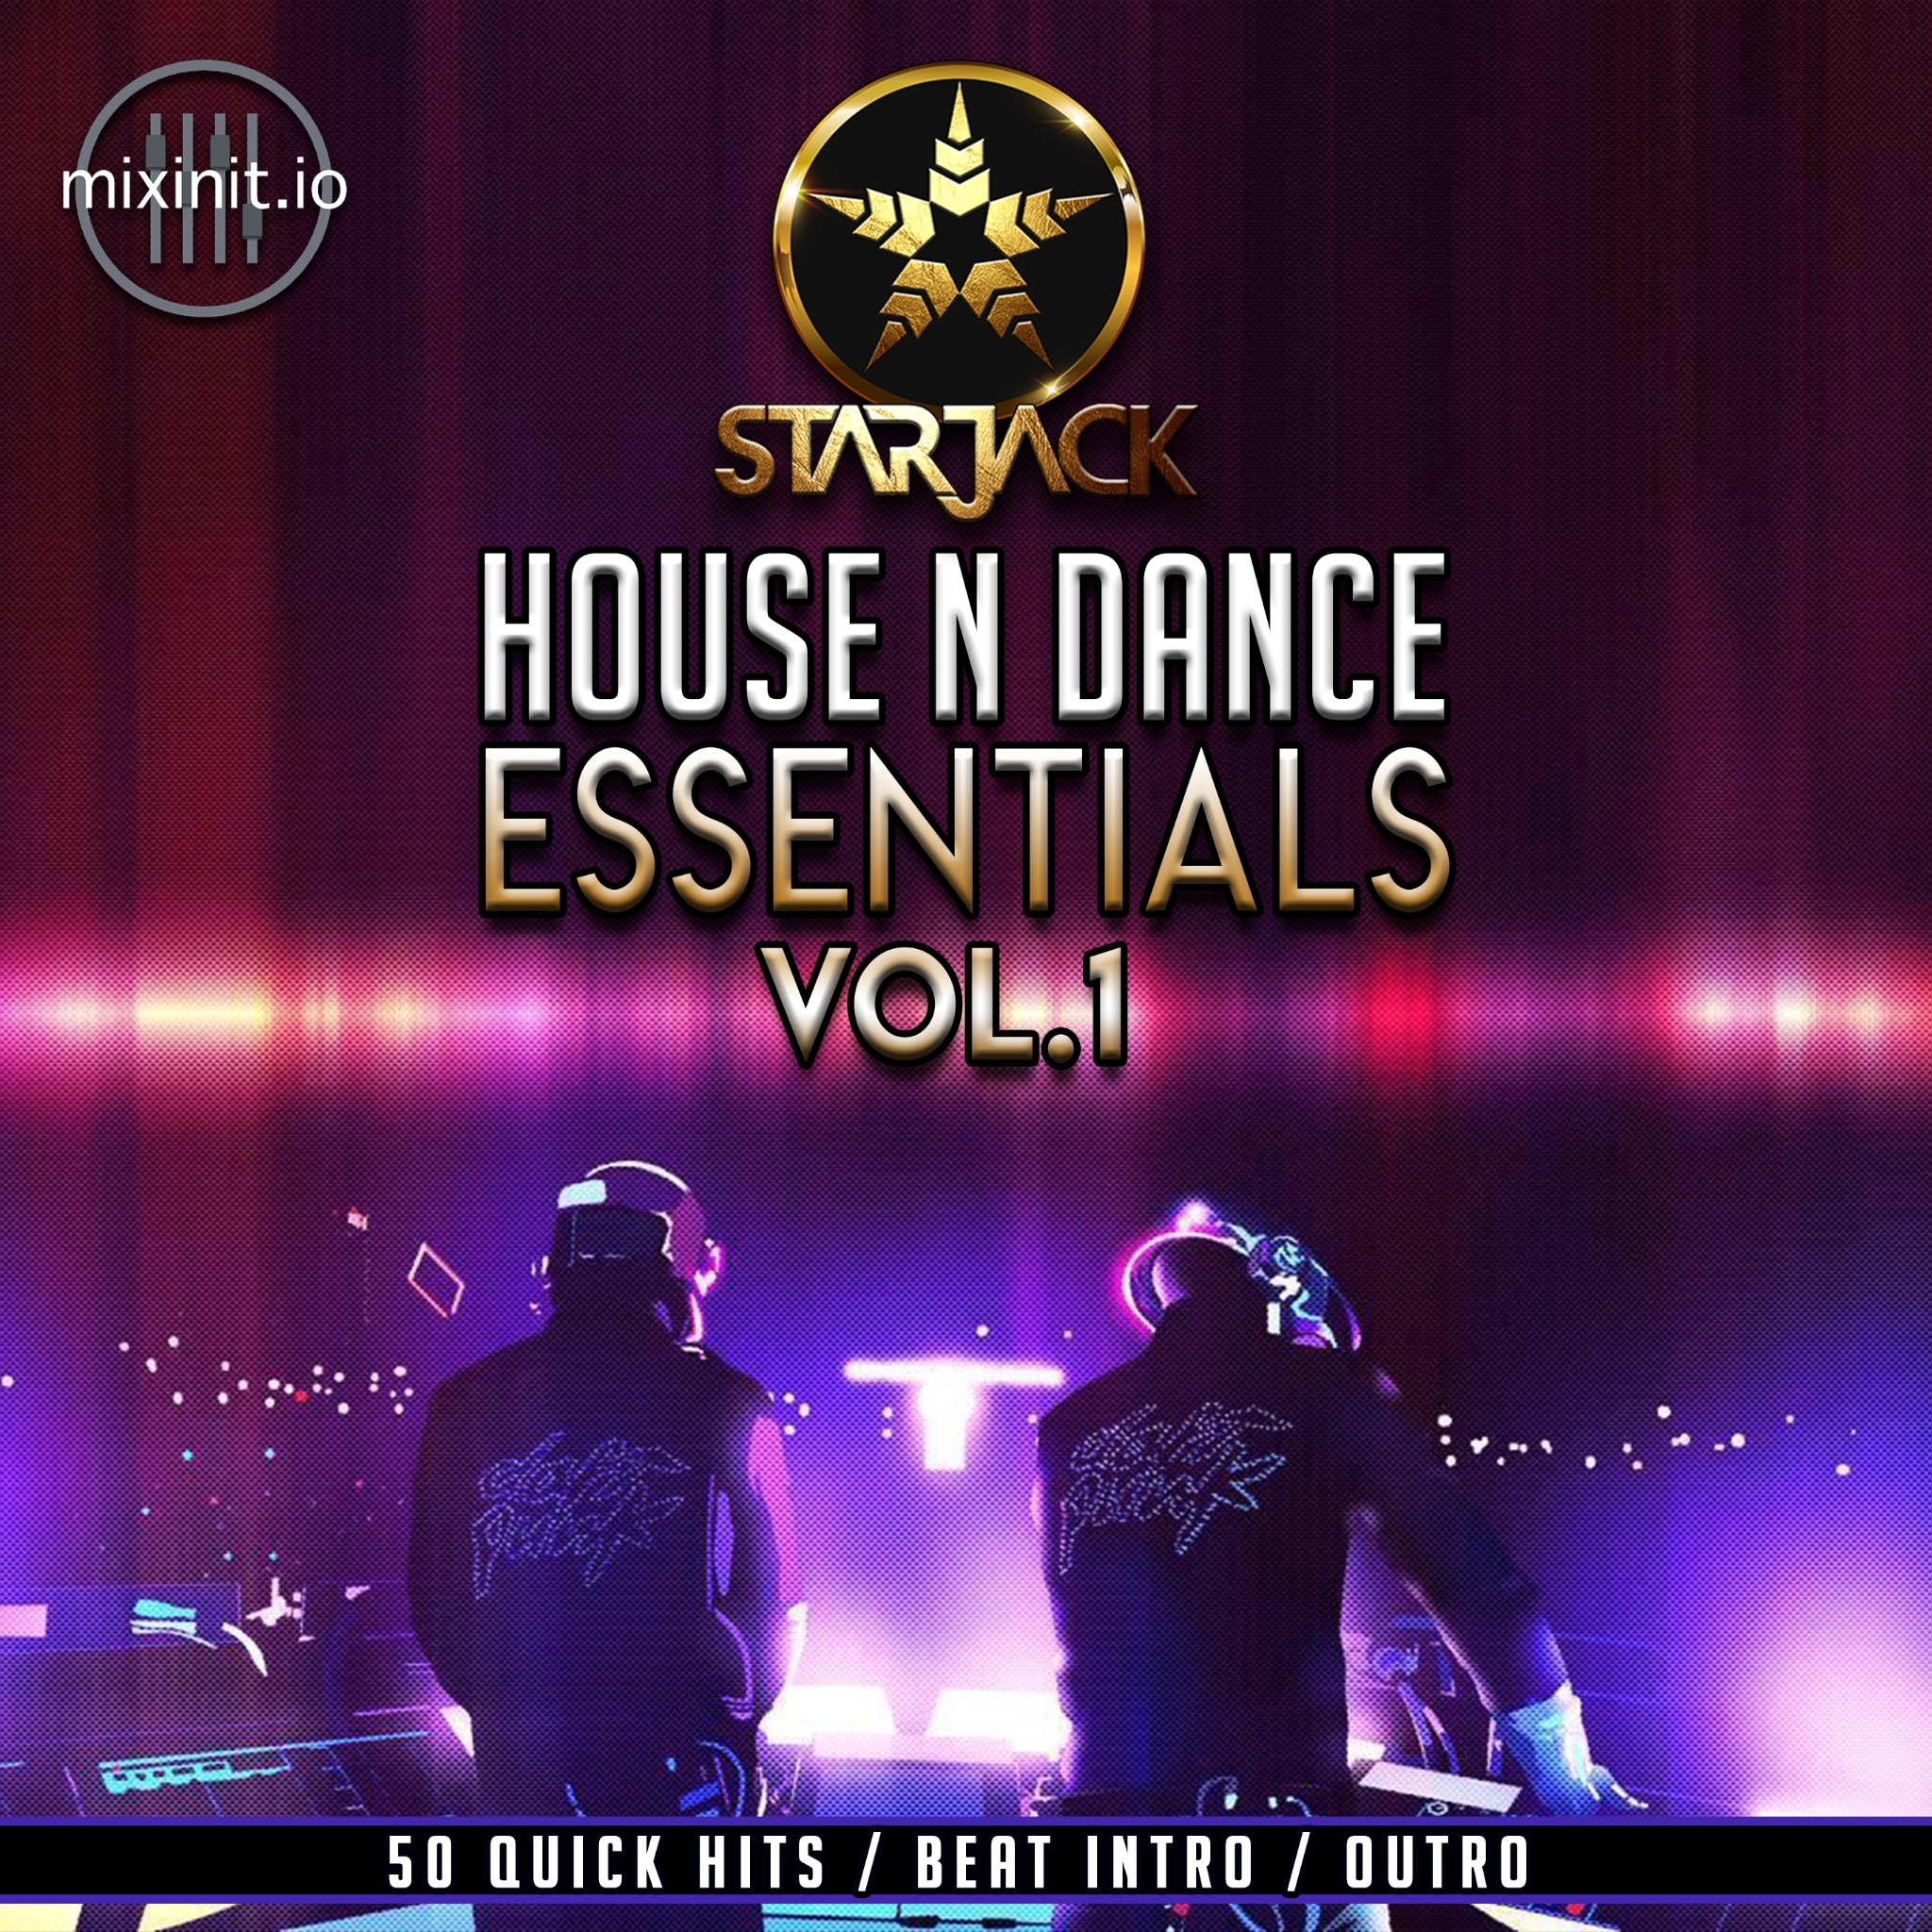 Starjack - House N Dance Essentials Vol. 1